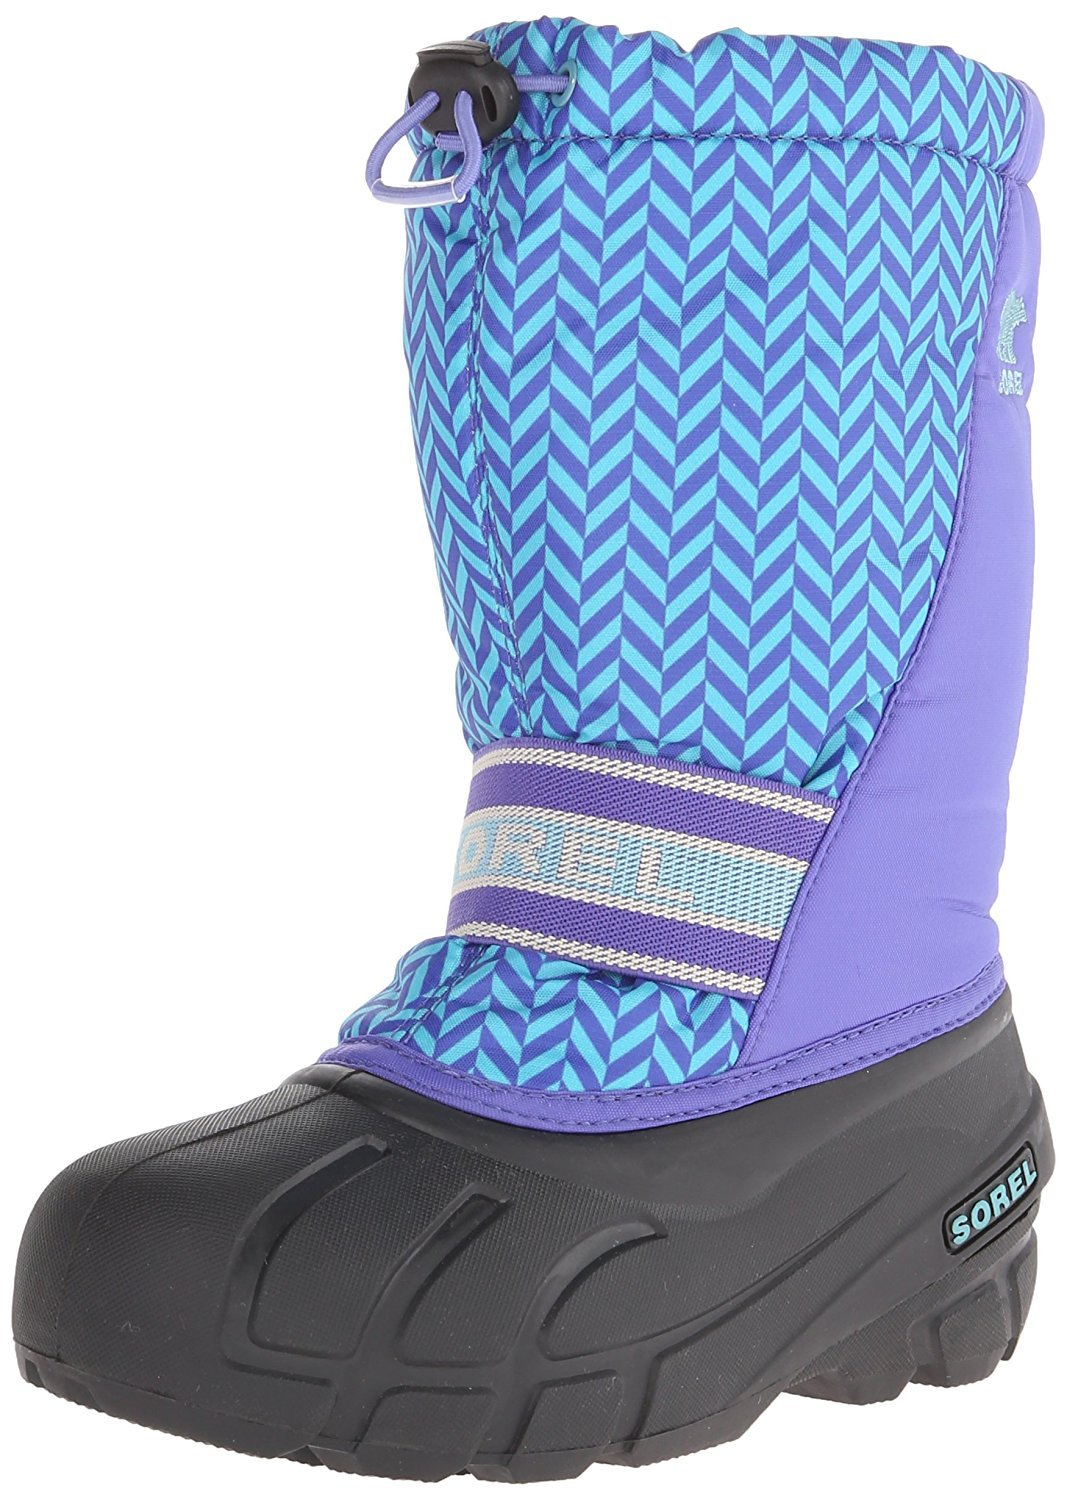 SOREL Cub Graphic 15 P LO Cold Weather Boot (Toddler/Little Kid/Big Kid), Purple Lotus, 6 M US Toddler